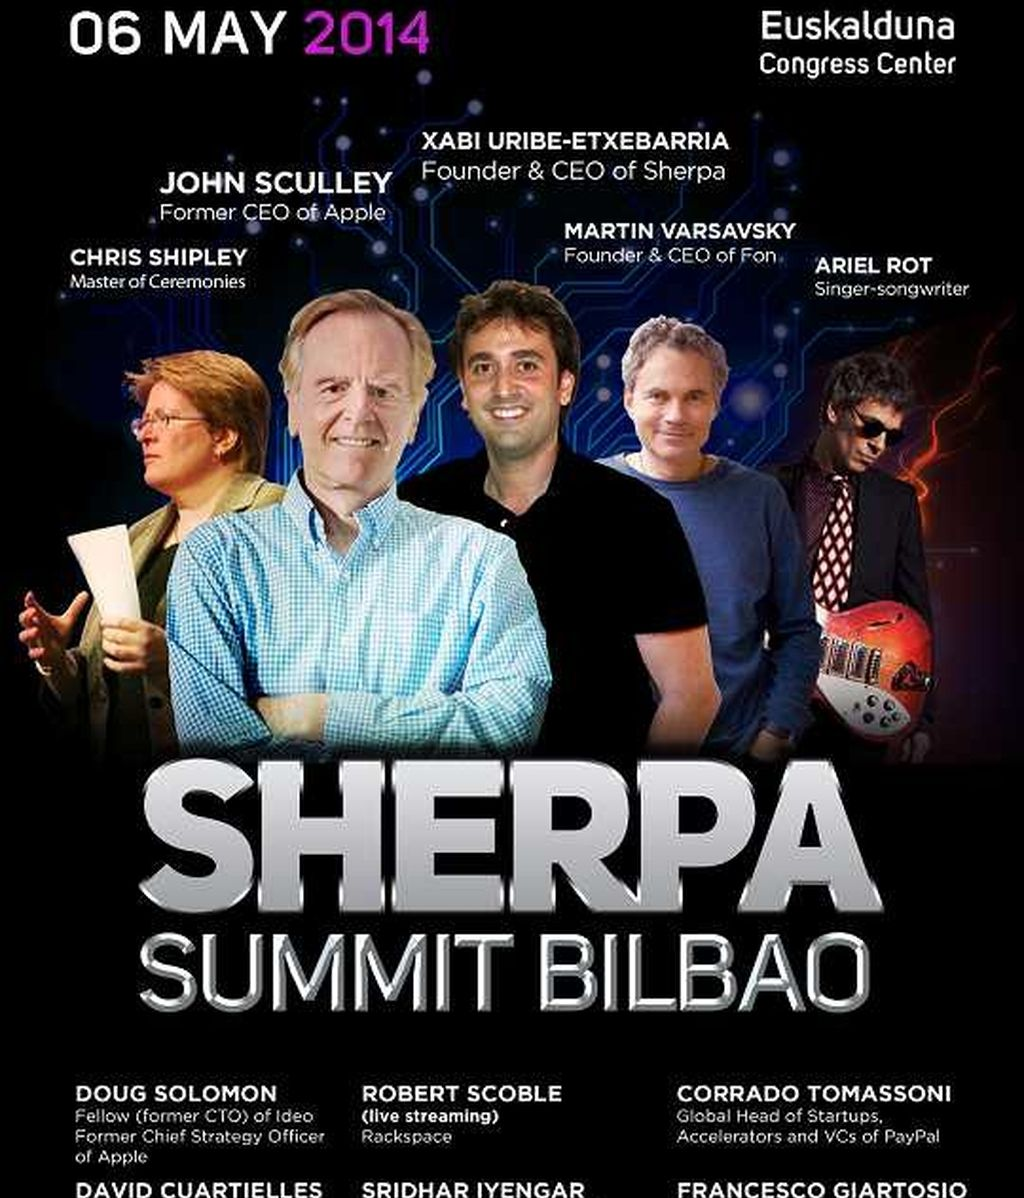 Sherpa Summit